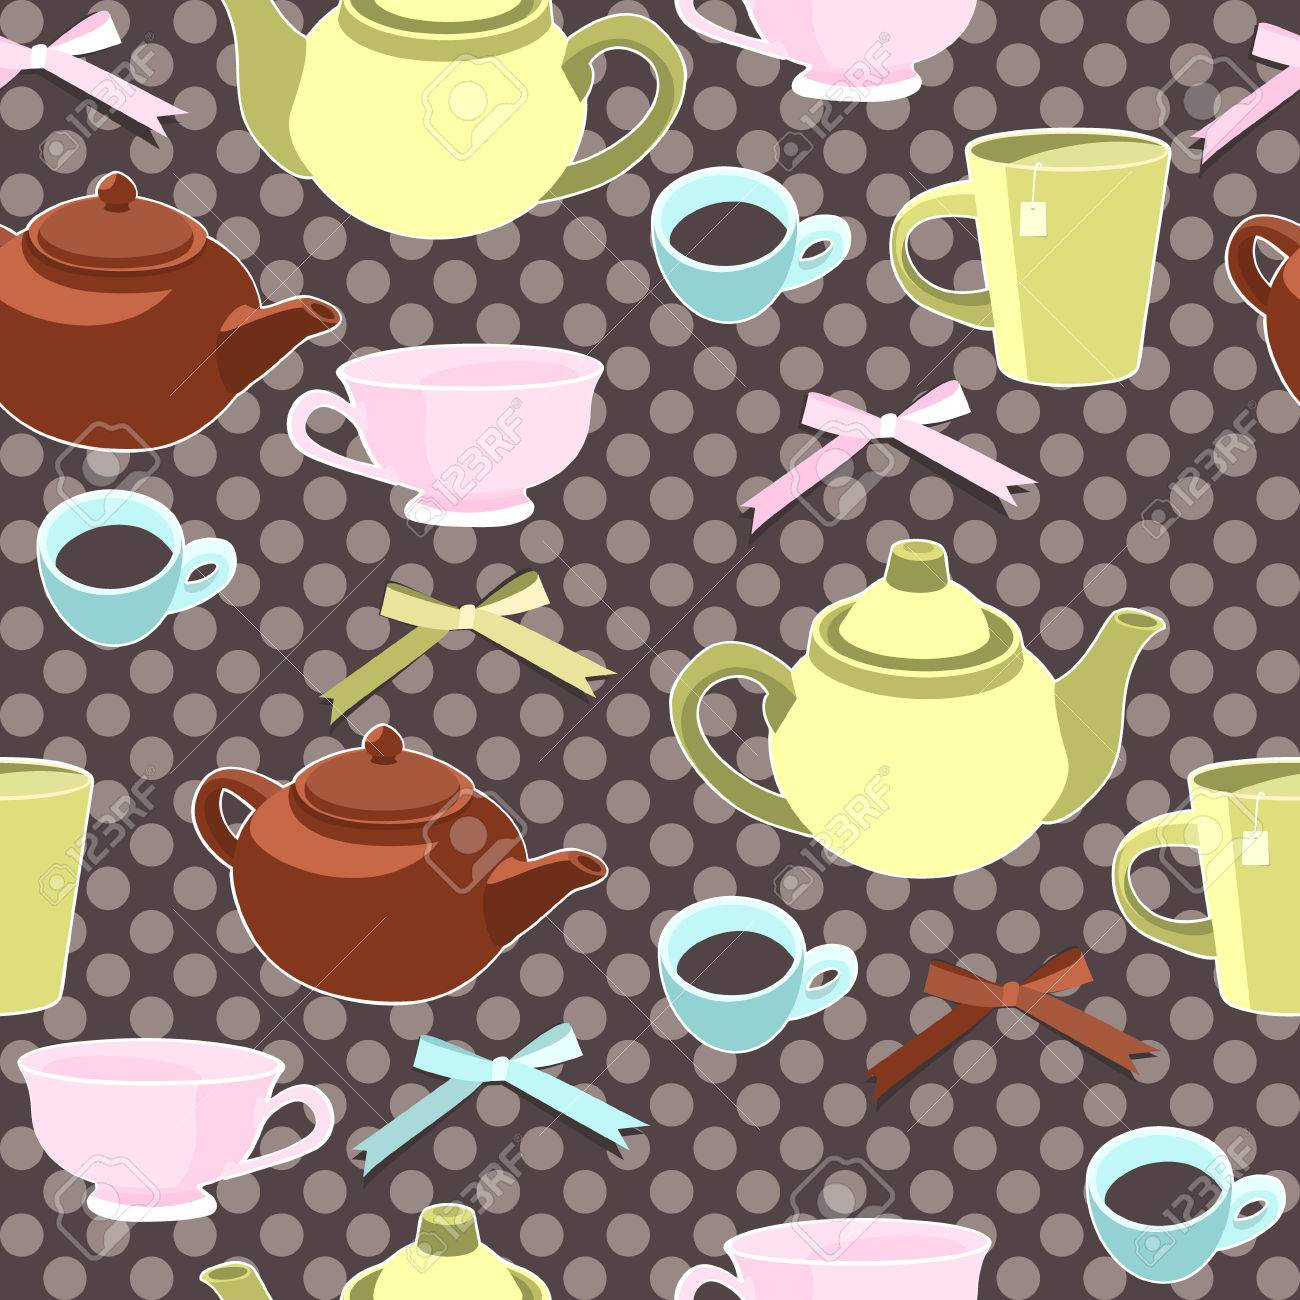 Teapots and cups seamless background Stock Vector - 7859107